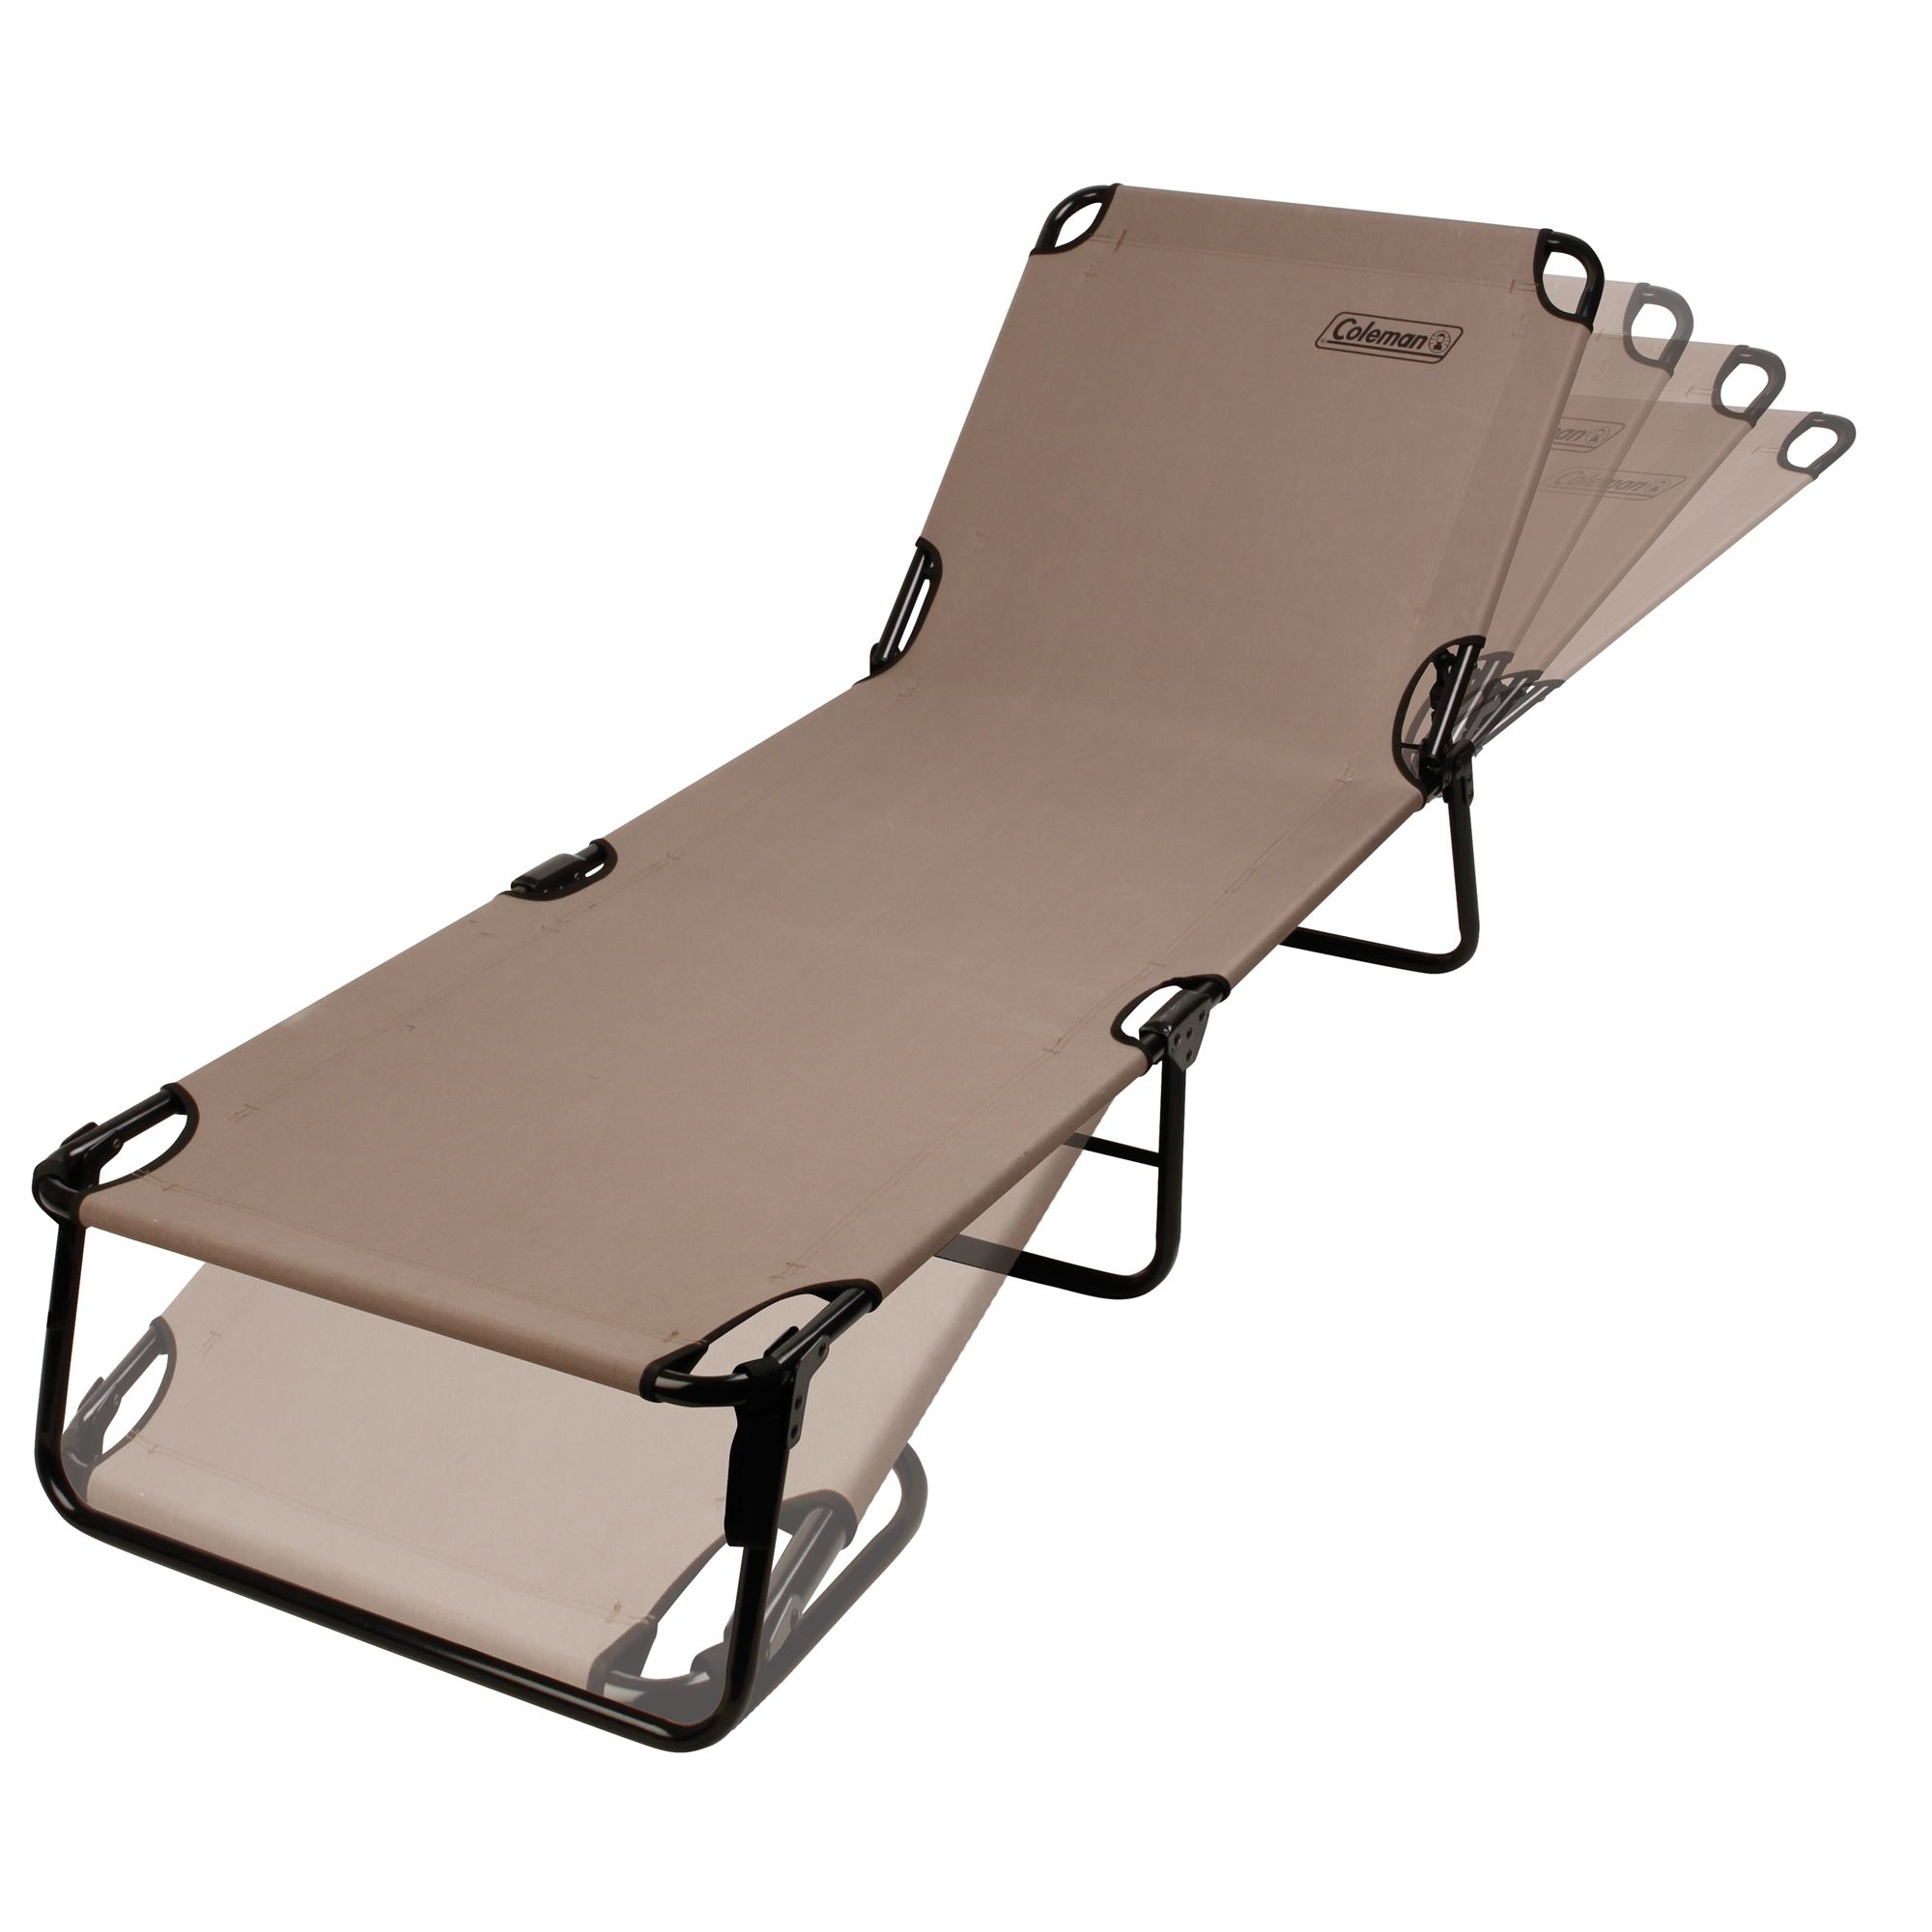 seayou products sun designer high en foldable loungers architonic chair dedon sail b folding chaise quality deck shade